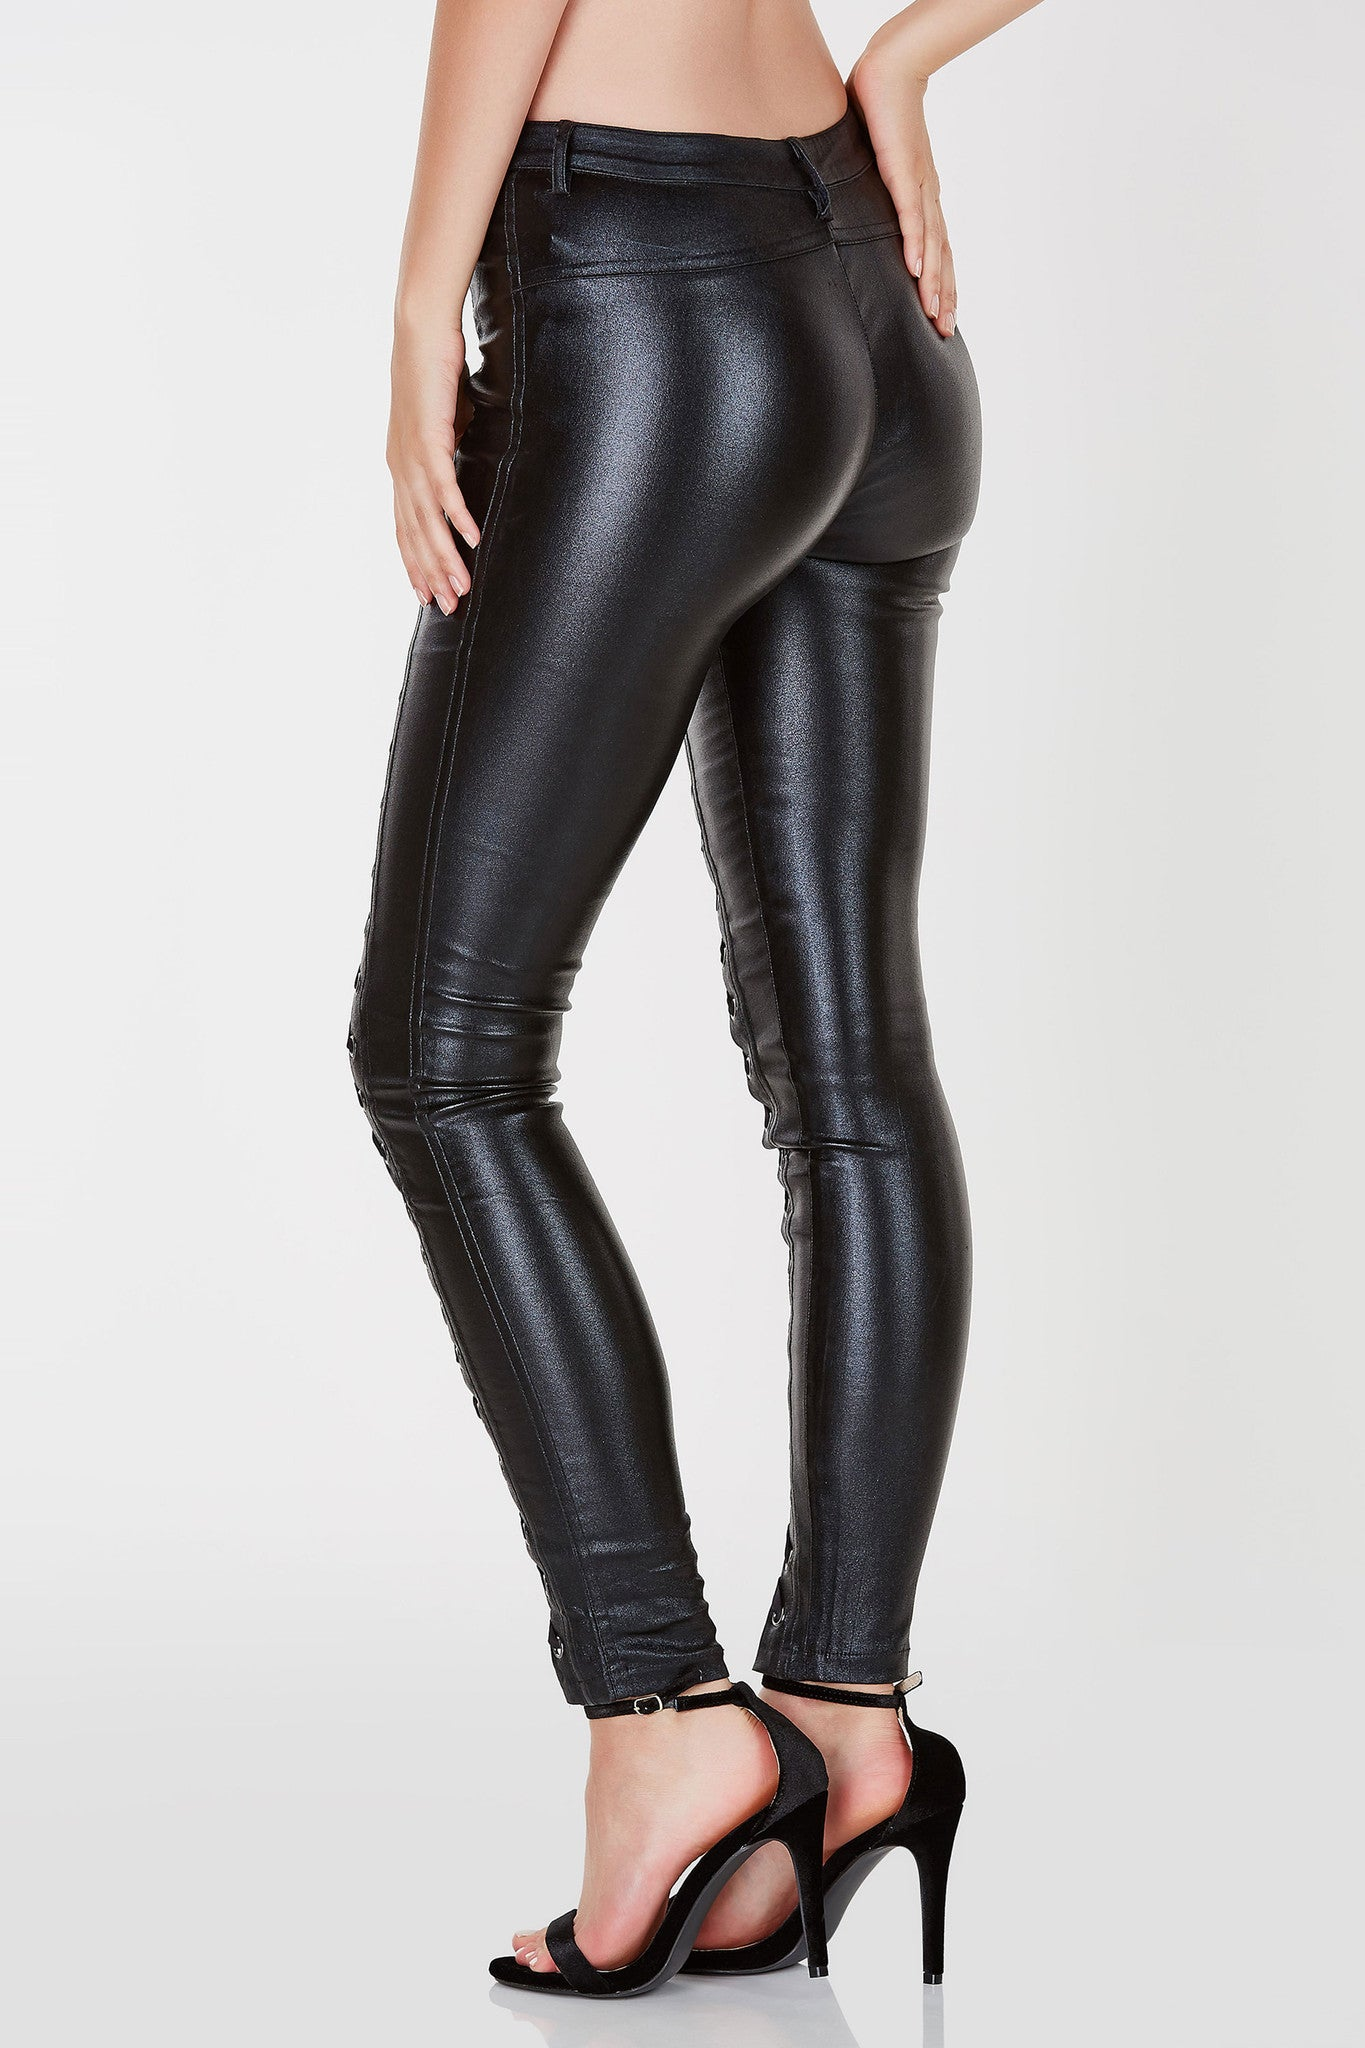 Faux leather finish skinny pants. Lace up detailing down the front on each leg. Single zip and button closure.